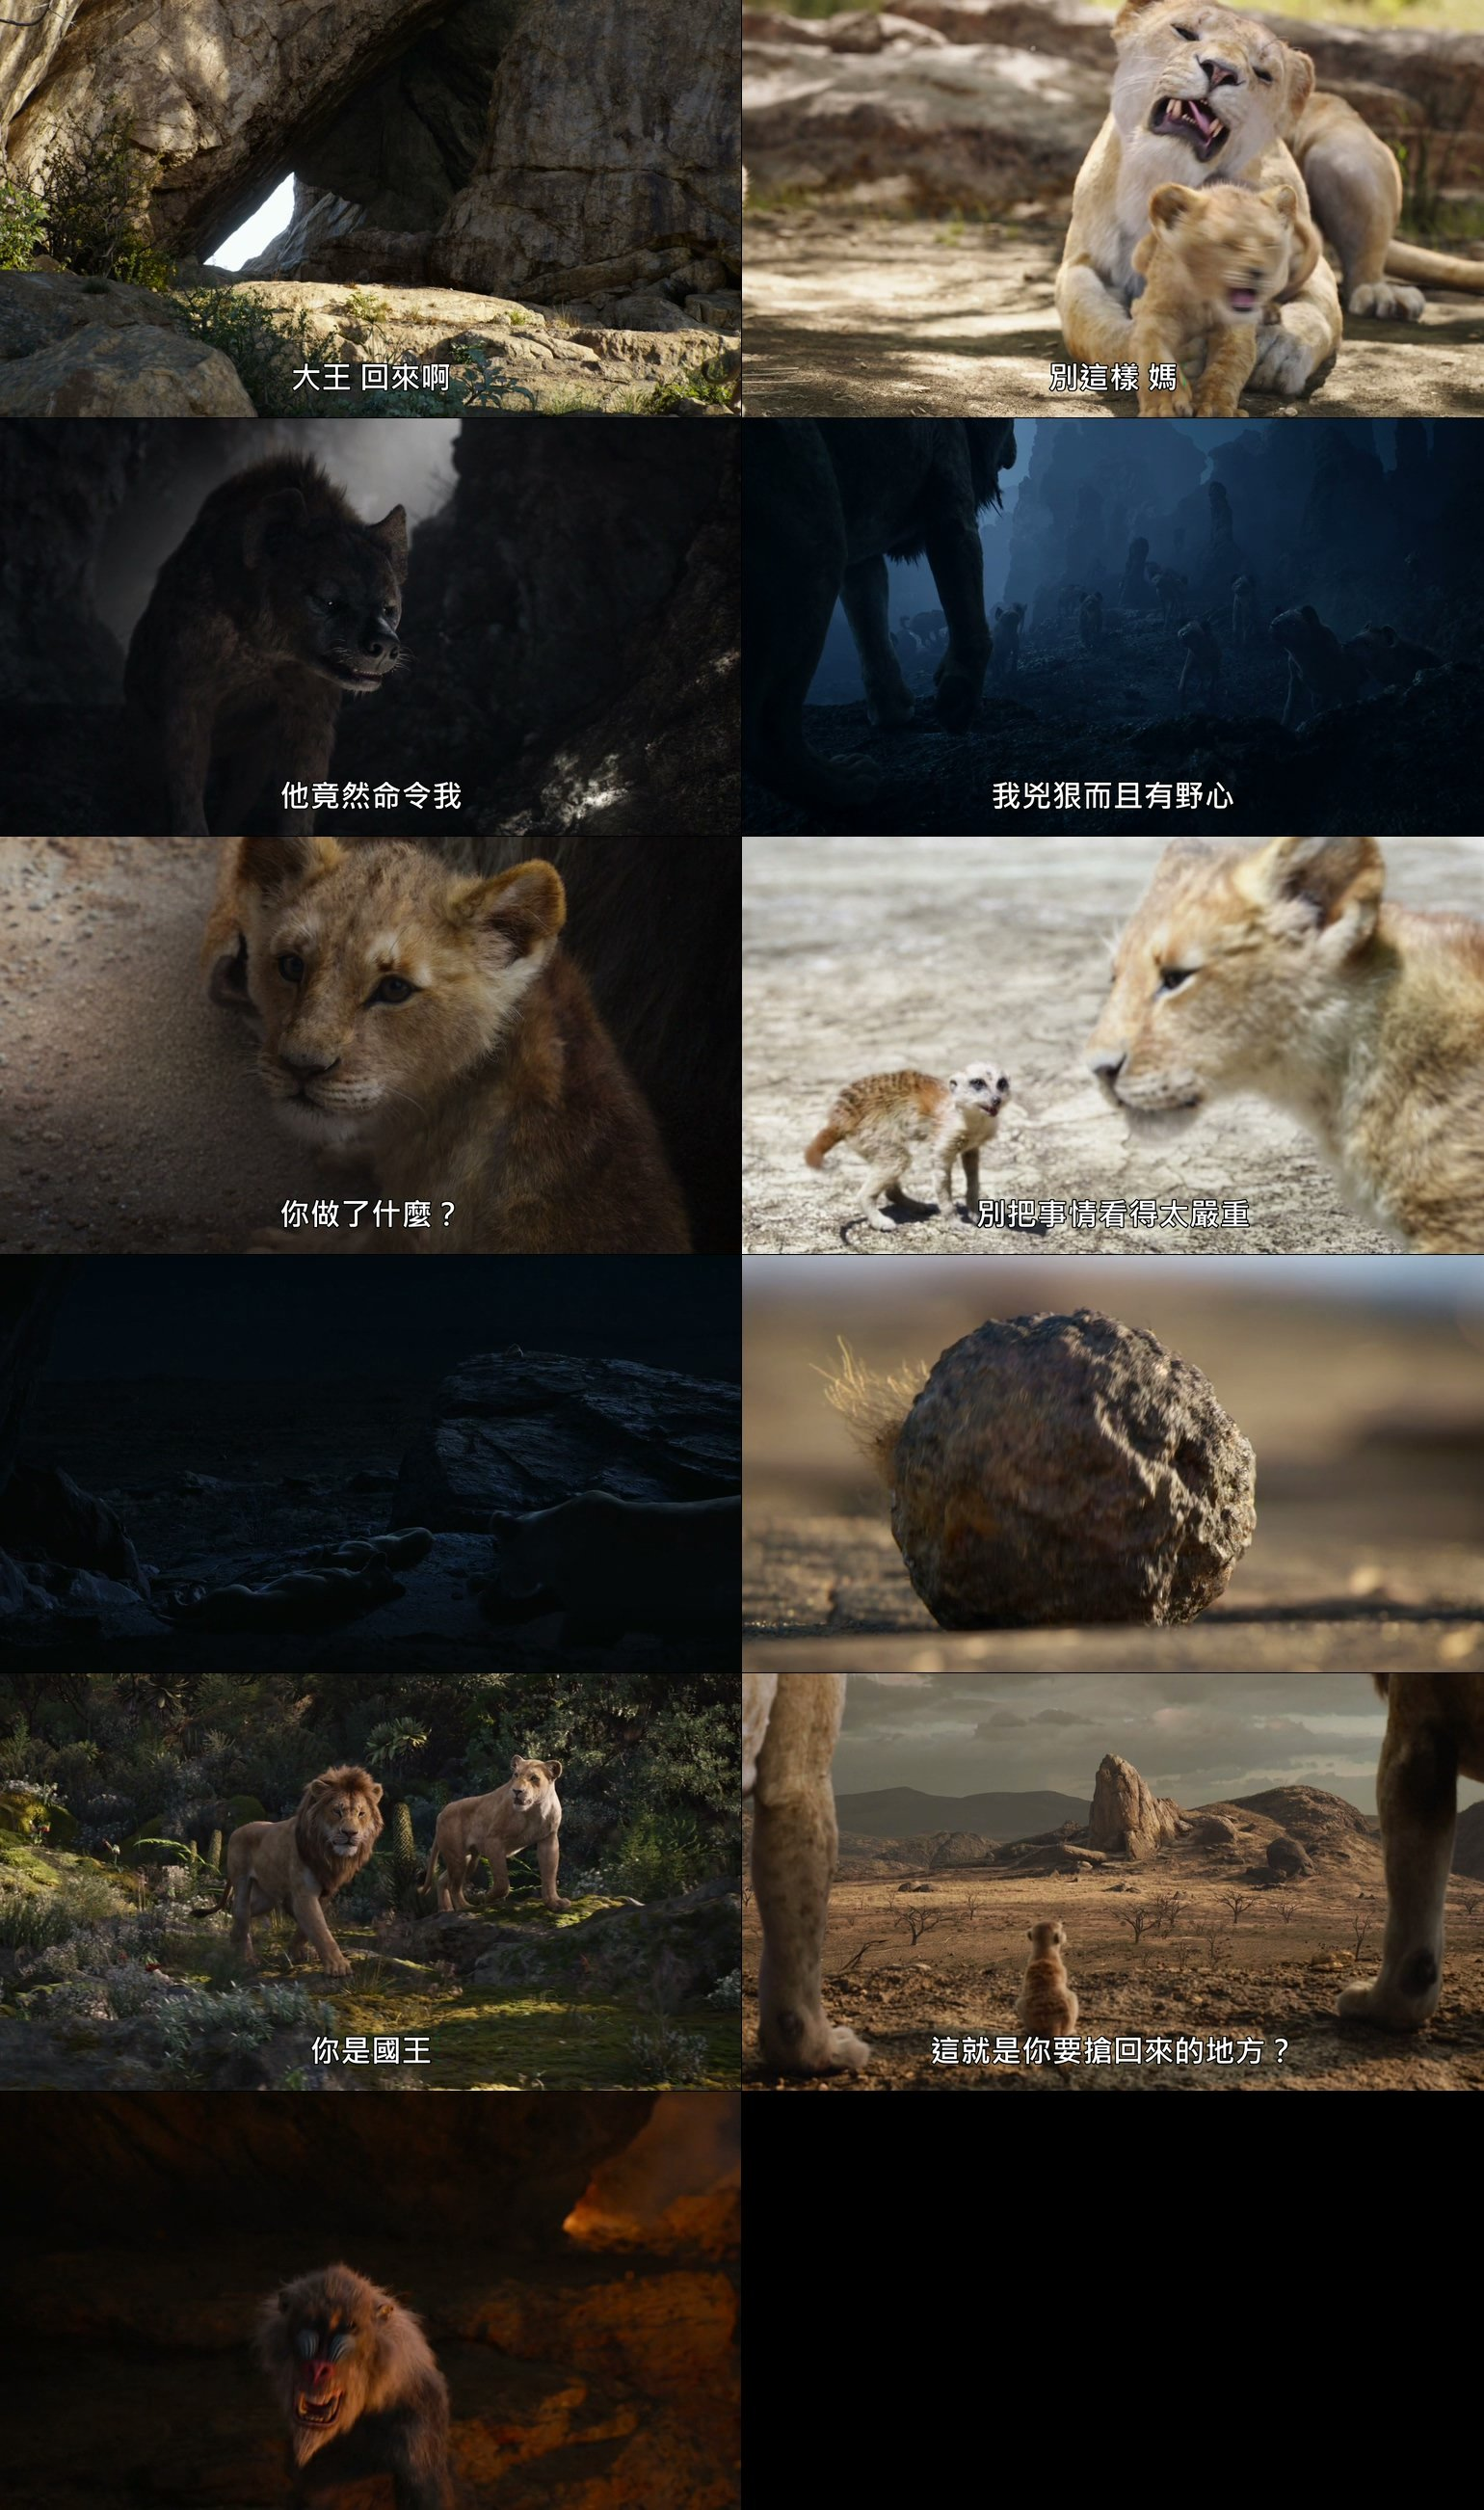 Lion King 1080p: The.Lion.King.2019.1080p.BluRay.x264-SPARKS